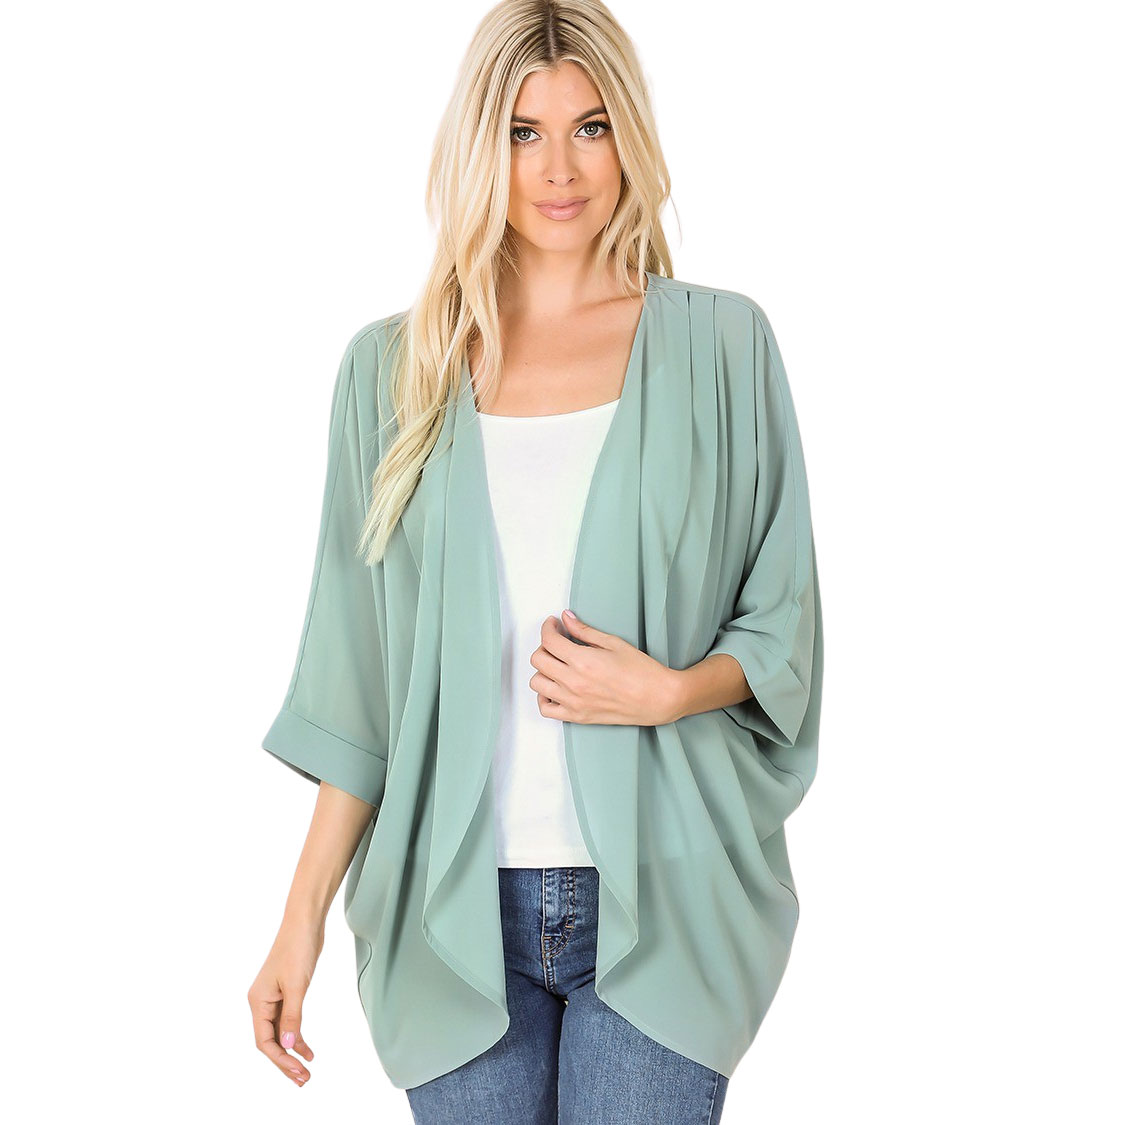 Cardigan - Woven Chiffon with Shoulder Pleat 2721